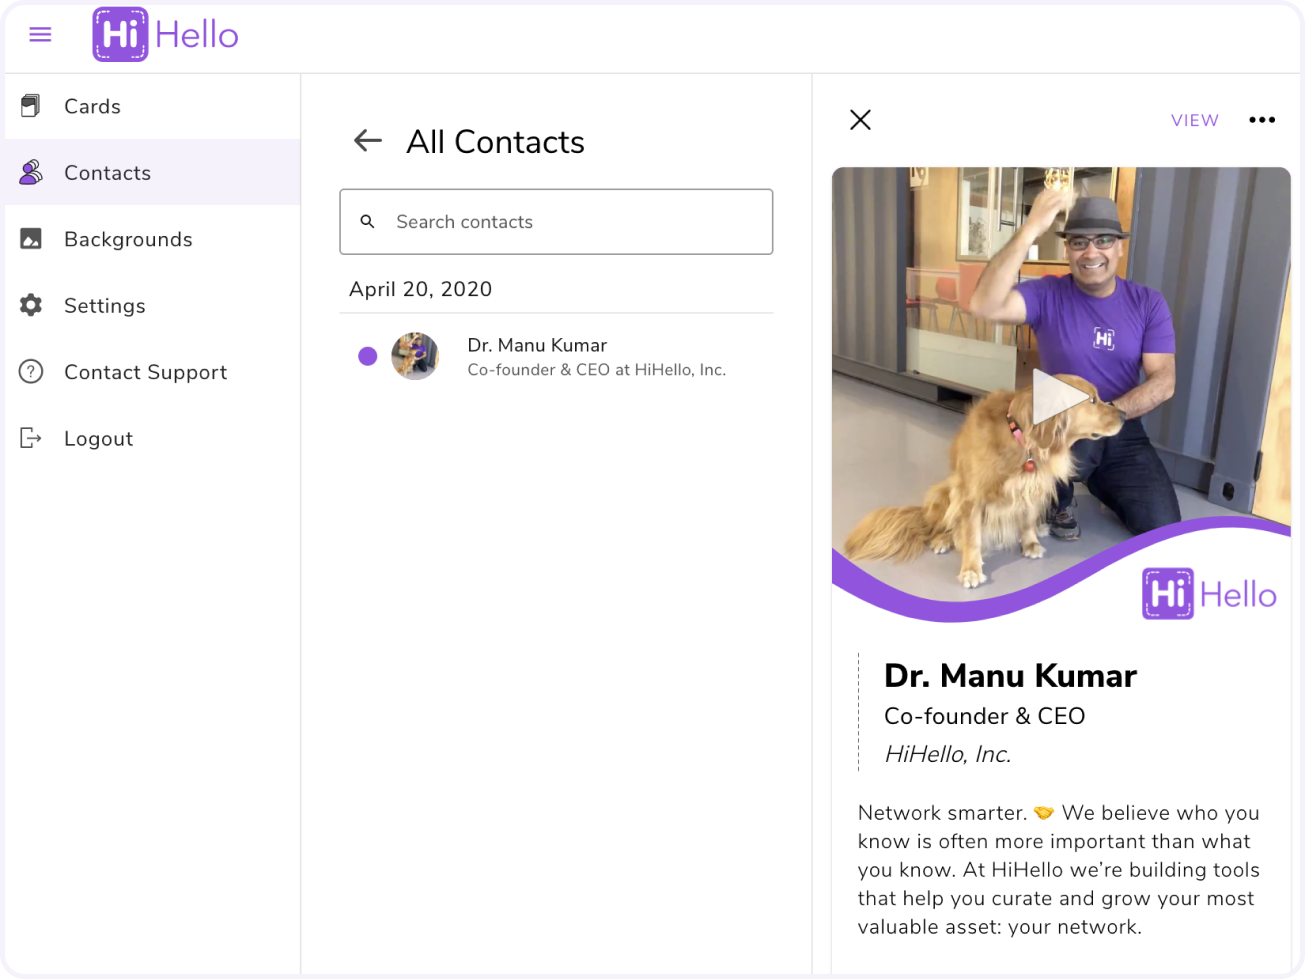 View and edit your contacts in the HiHello web app.